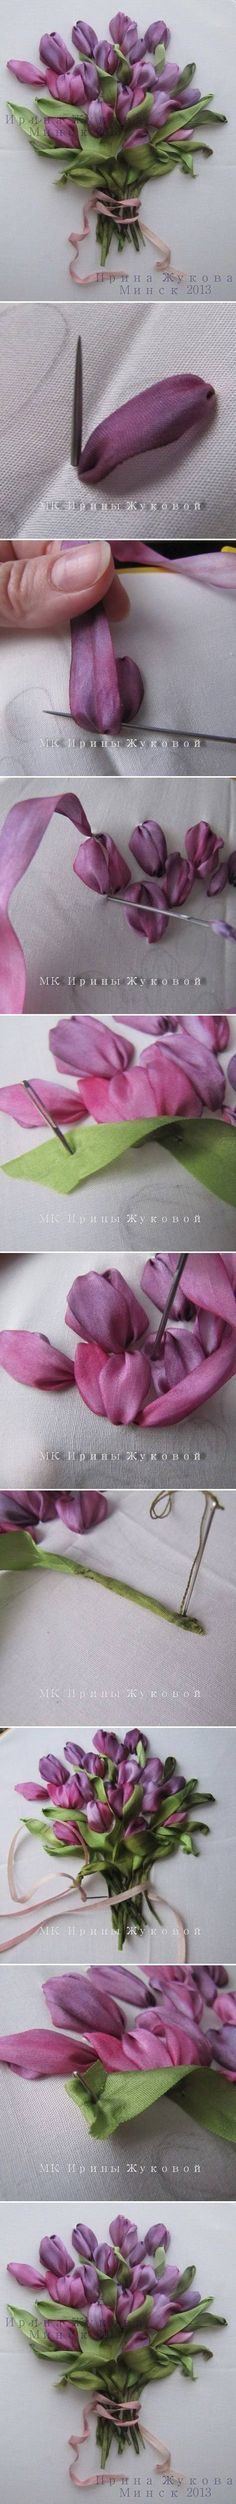 DIY Embroidery Ribbon Flower DIY Projects   UsefulDIY.com: If this works, it's sensational. If not, it would still be a pretty funny pinterest-fail.